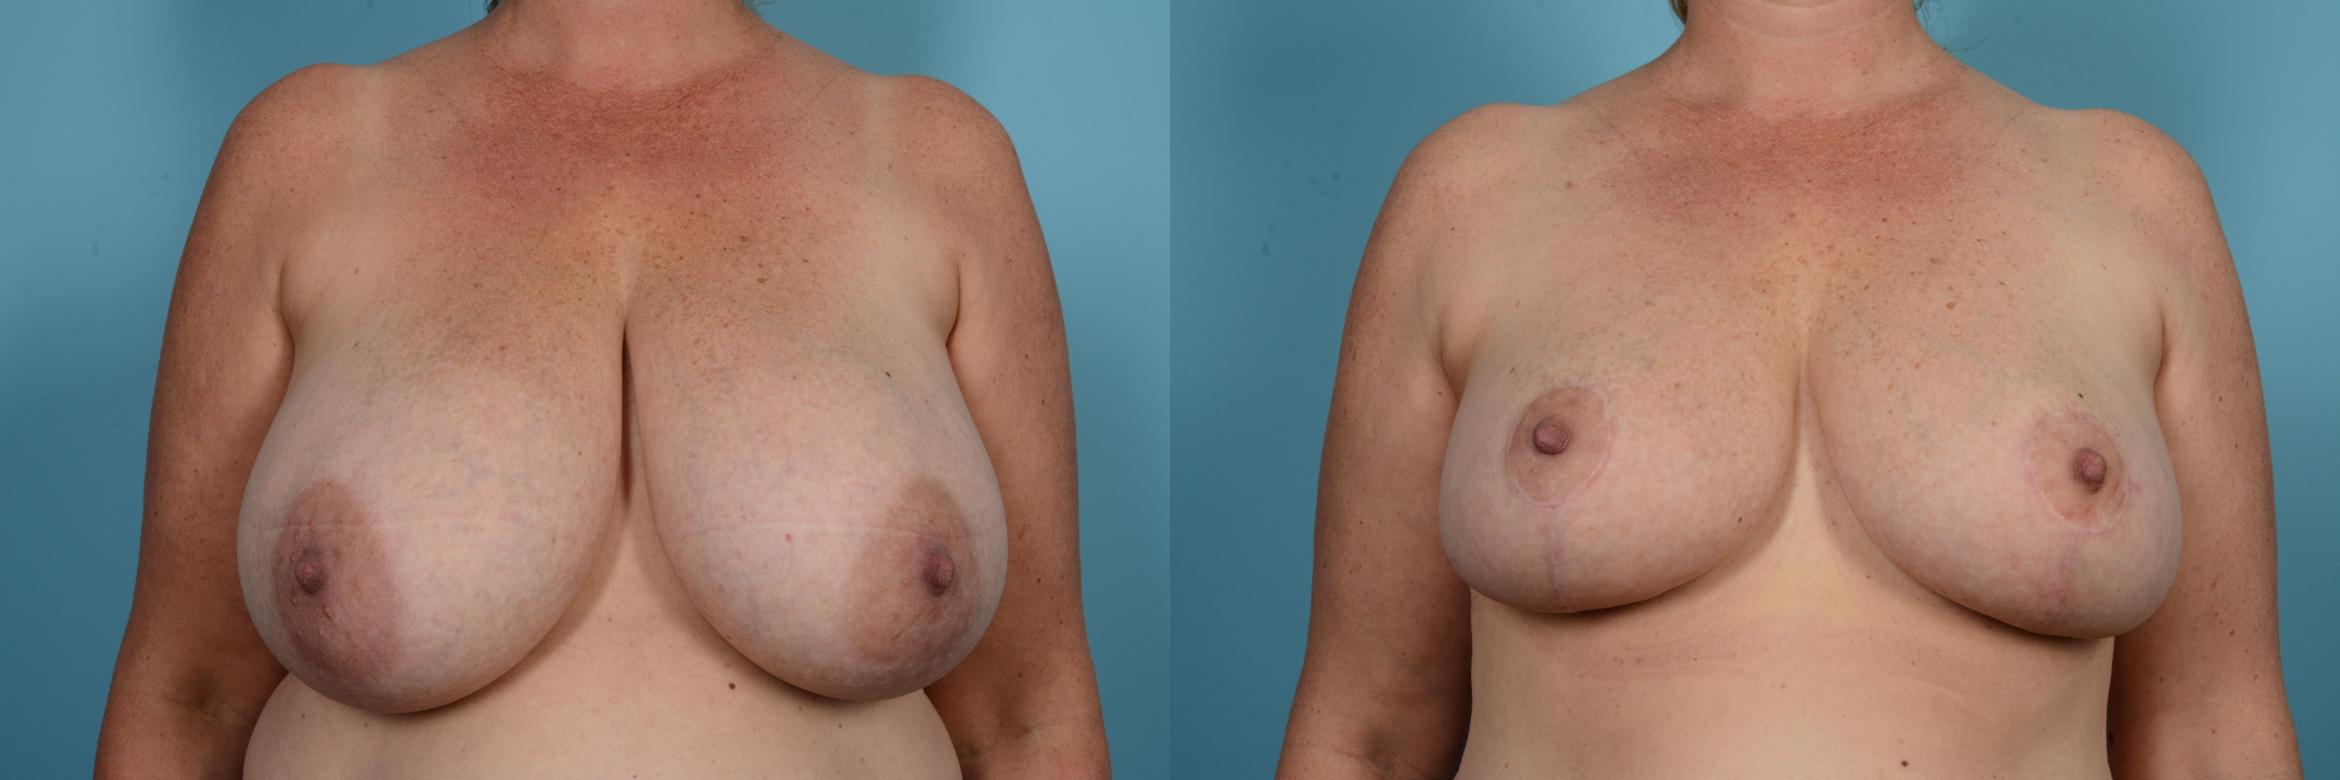 Breast Reduction Case 581 Before & After View #1 | Chicago, IL | TLKM Plastic Surgery